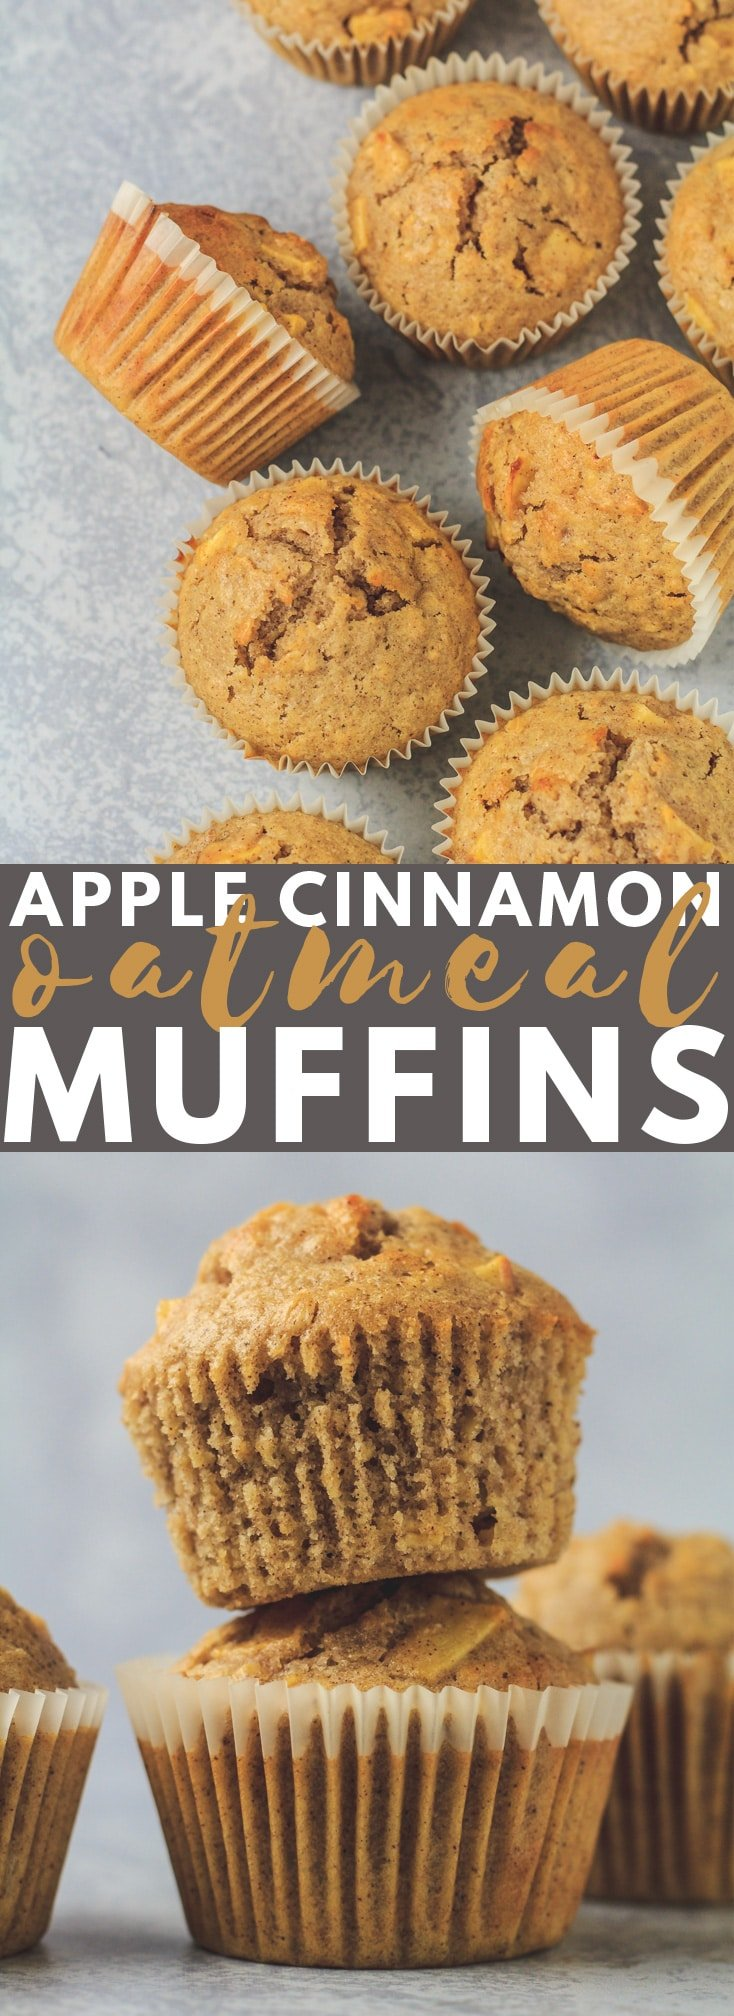 Apple Cinnamon Oatmeal Muffins - Deliciously moist and fluffy cinnamon-spiced muffins that are loaded with oats and apple chunks. Perfect for an indulgent breakfast or snack!